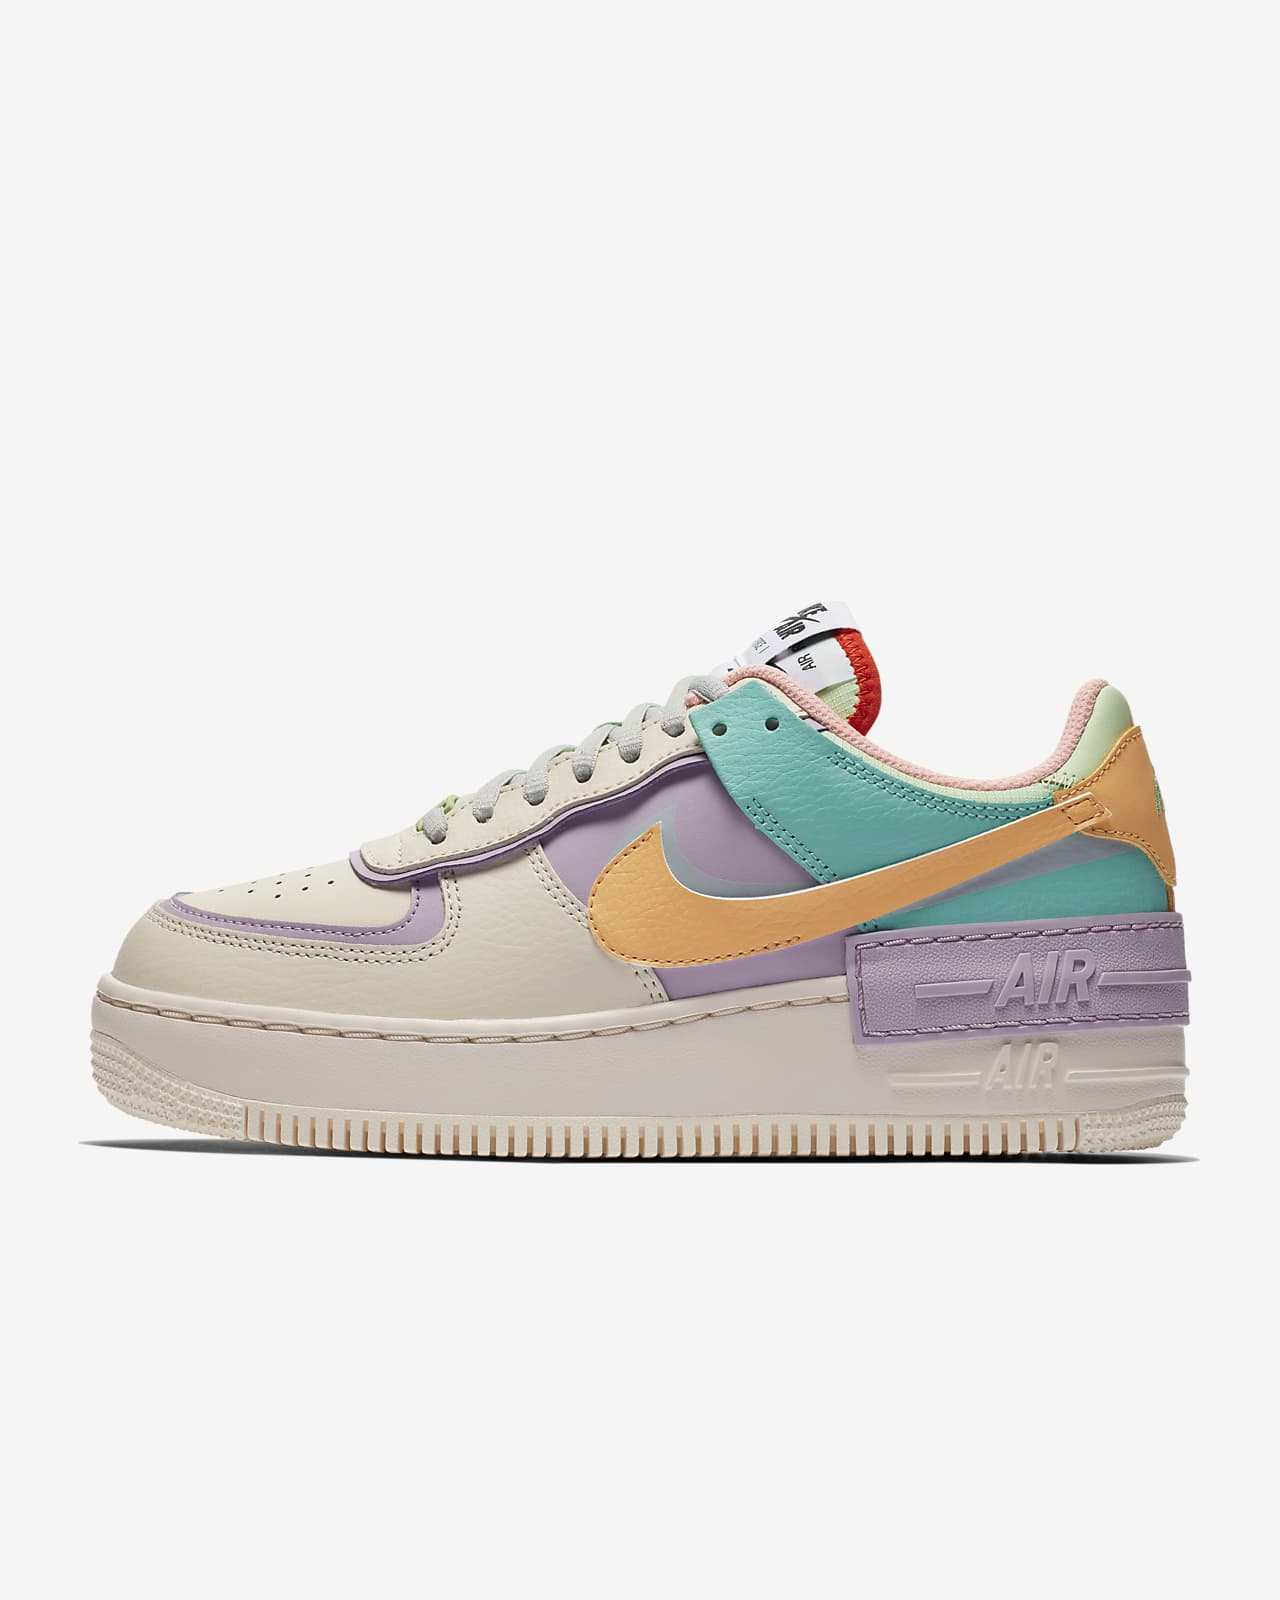 Elektroda Sovrastvo Il Nike Air Force 1 Shadow Womens Yelmbusiness Org This nike air force 1 shadow comes with an iridescent pixelated swoosh. elektroda sovrastvo il nike air force 1 shadow womens